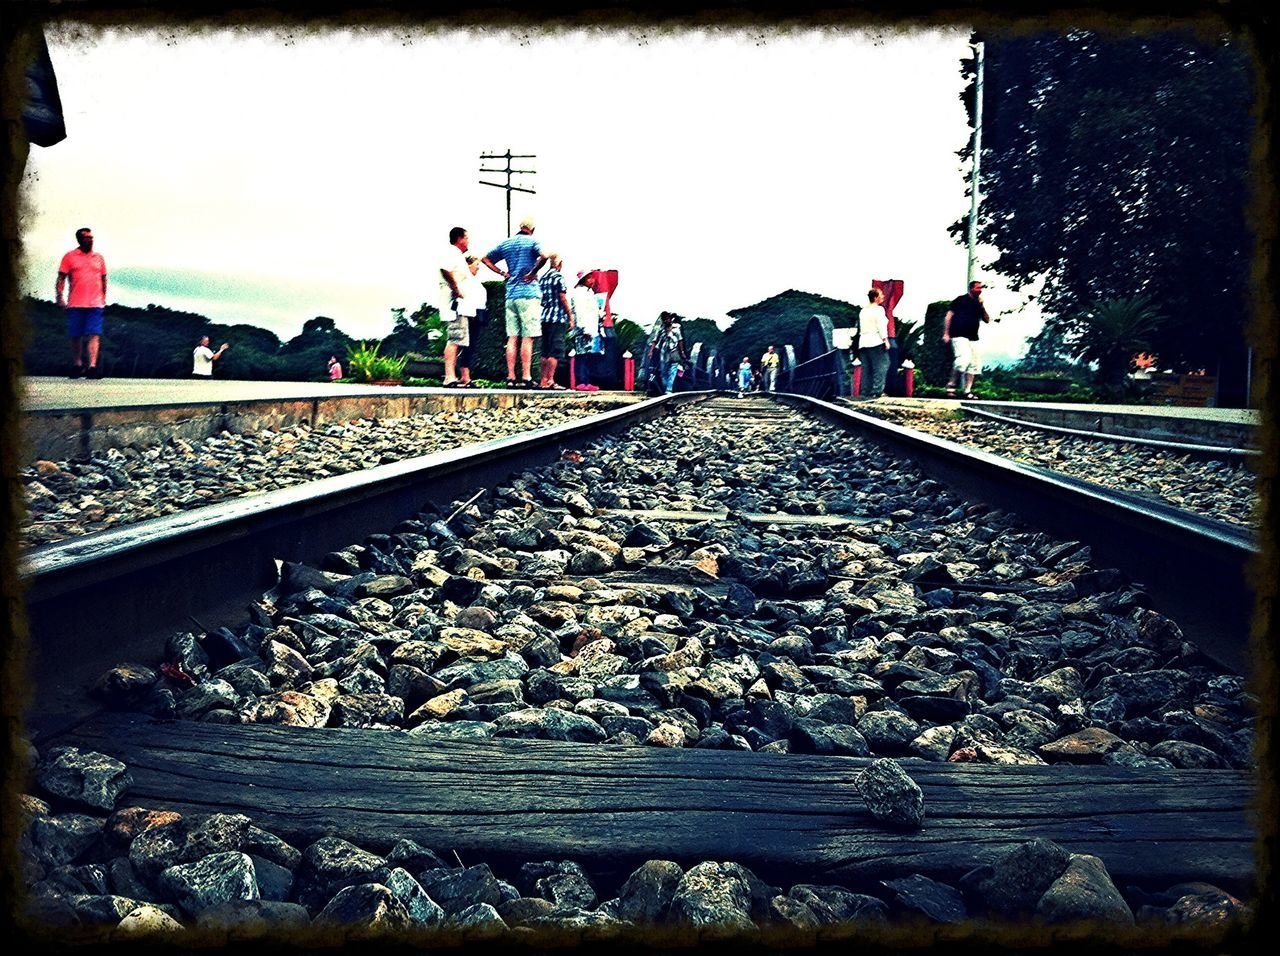 railroad track, rail transportation, day, real people, large group of people, transportation, outdoors, men, women, standing, full length, sky, nature, adult, people